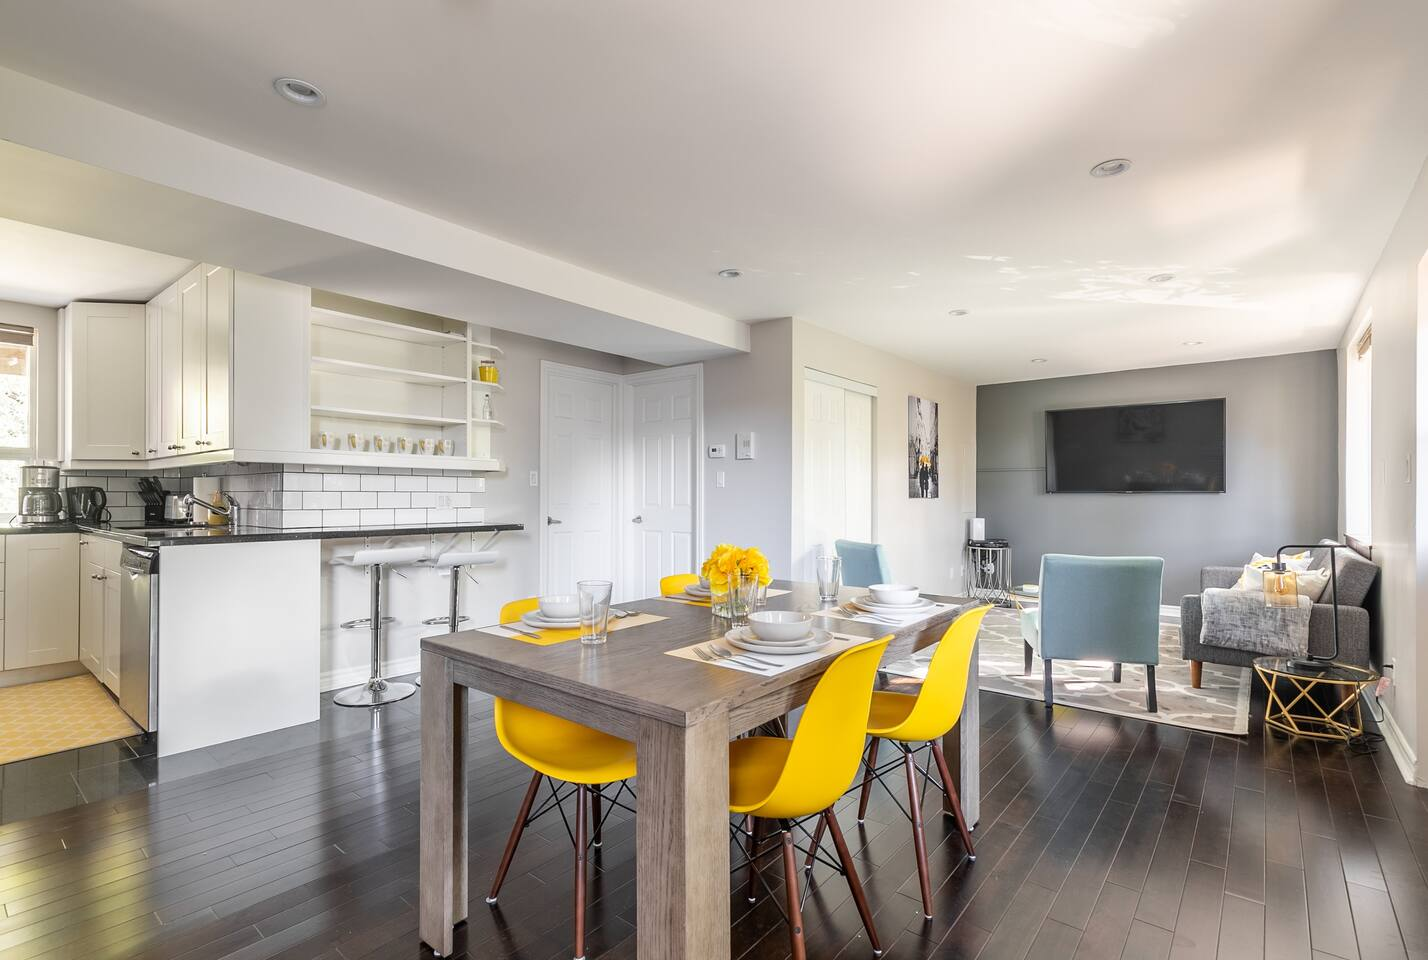 Beautiful newly renovated open concept kitchen, dining and living area